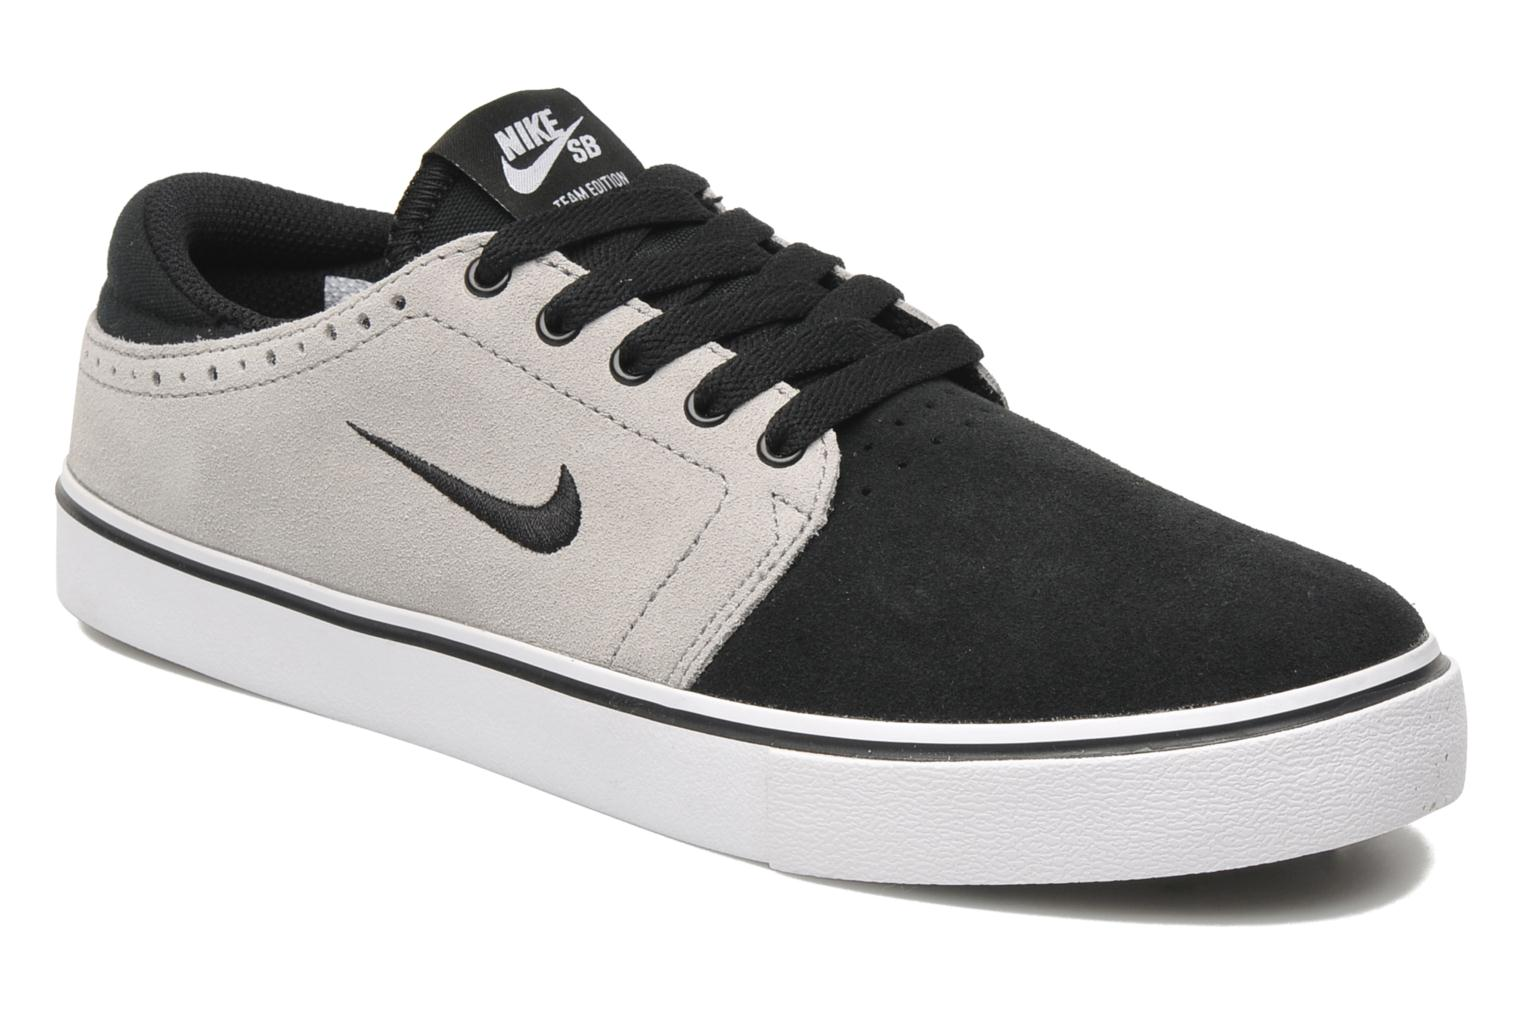 nike nike sb team edition noir baskets chez sarenza 182182. Black Bedroom Furniture Sets. Home Design Ideas